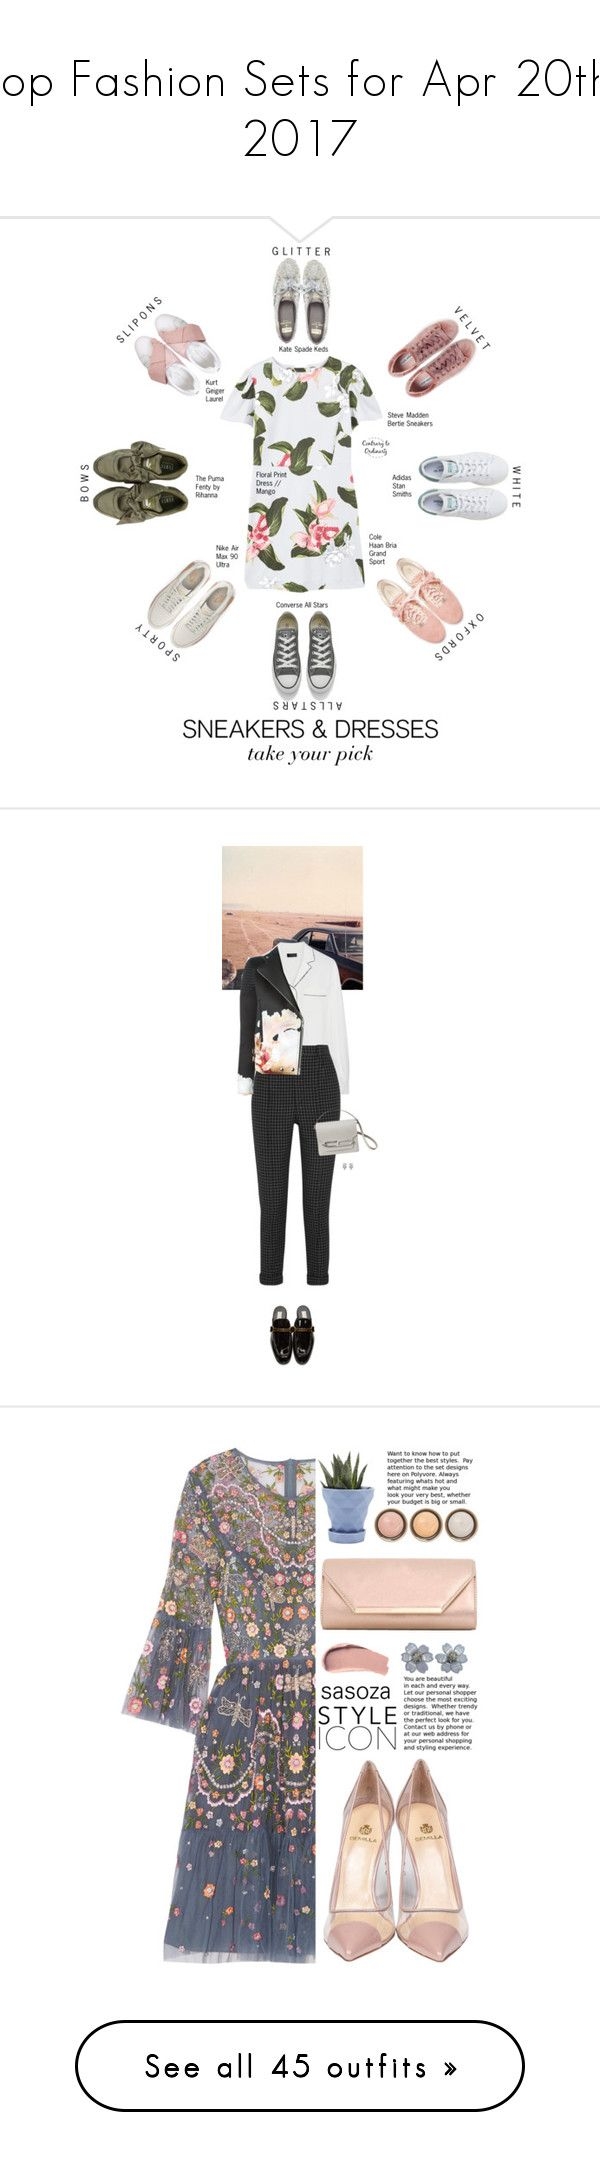 """""""Top Fashion Sets for Apr 20th, 2017"""" by polyvore ❤ liked on Polyvore featuring MANGO, Converse, adidas, Kate Spade, Steve Madden, NIKE, Cole Haan, Puma, Kurt Geiger and sneakers"""